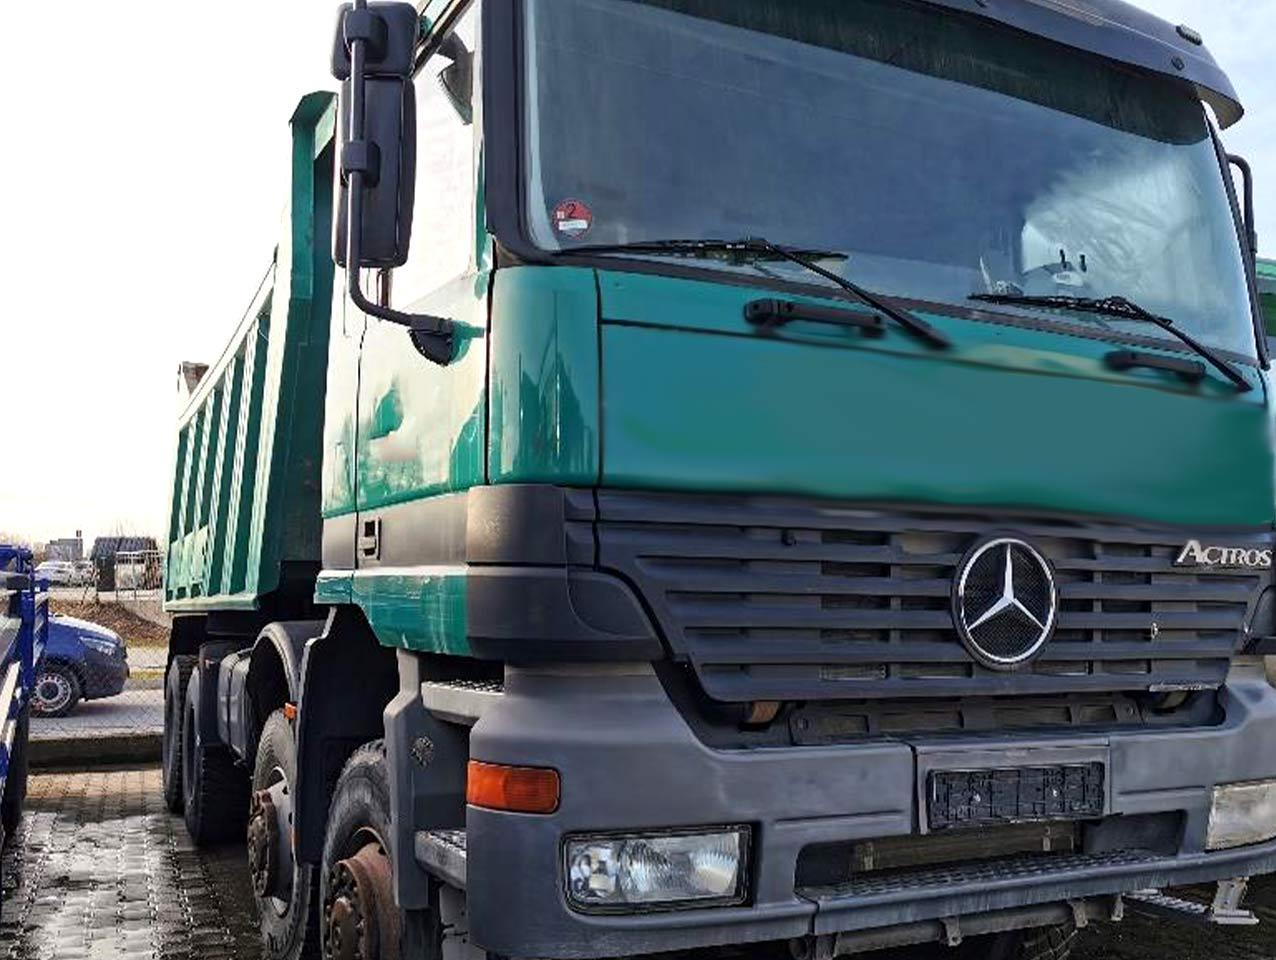 MB Actros 480 8x8 with Meiller Tipper